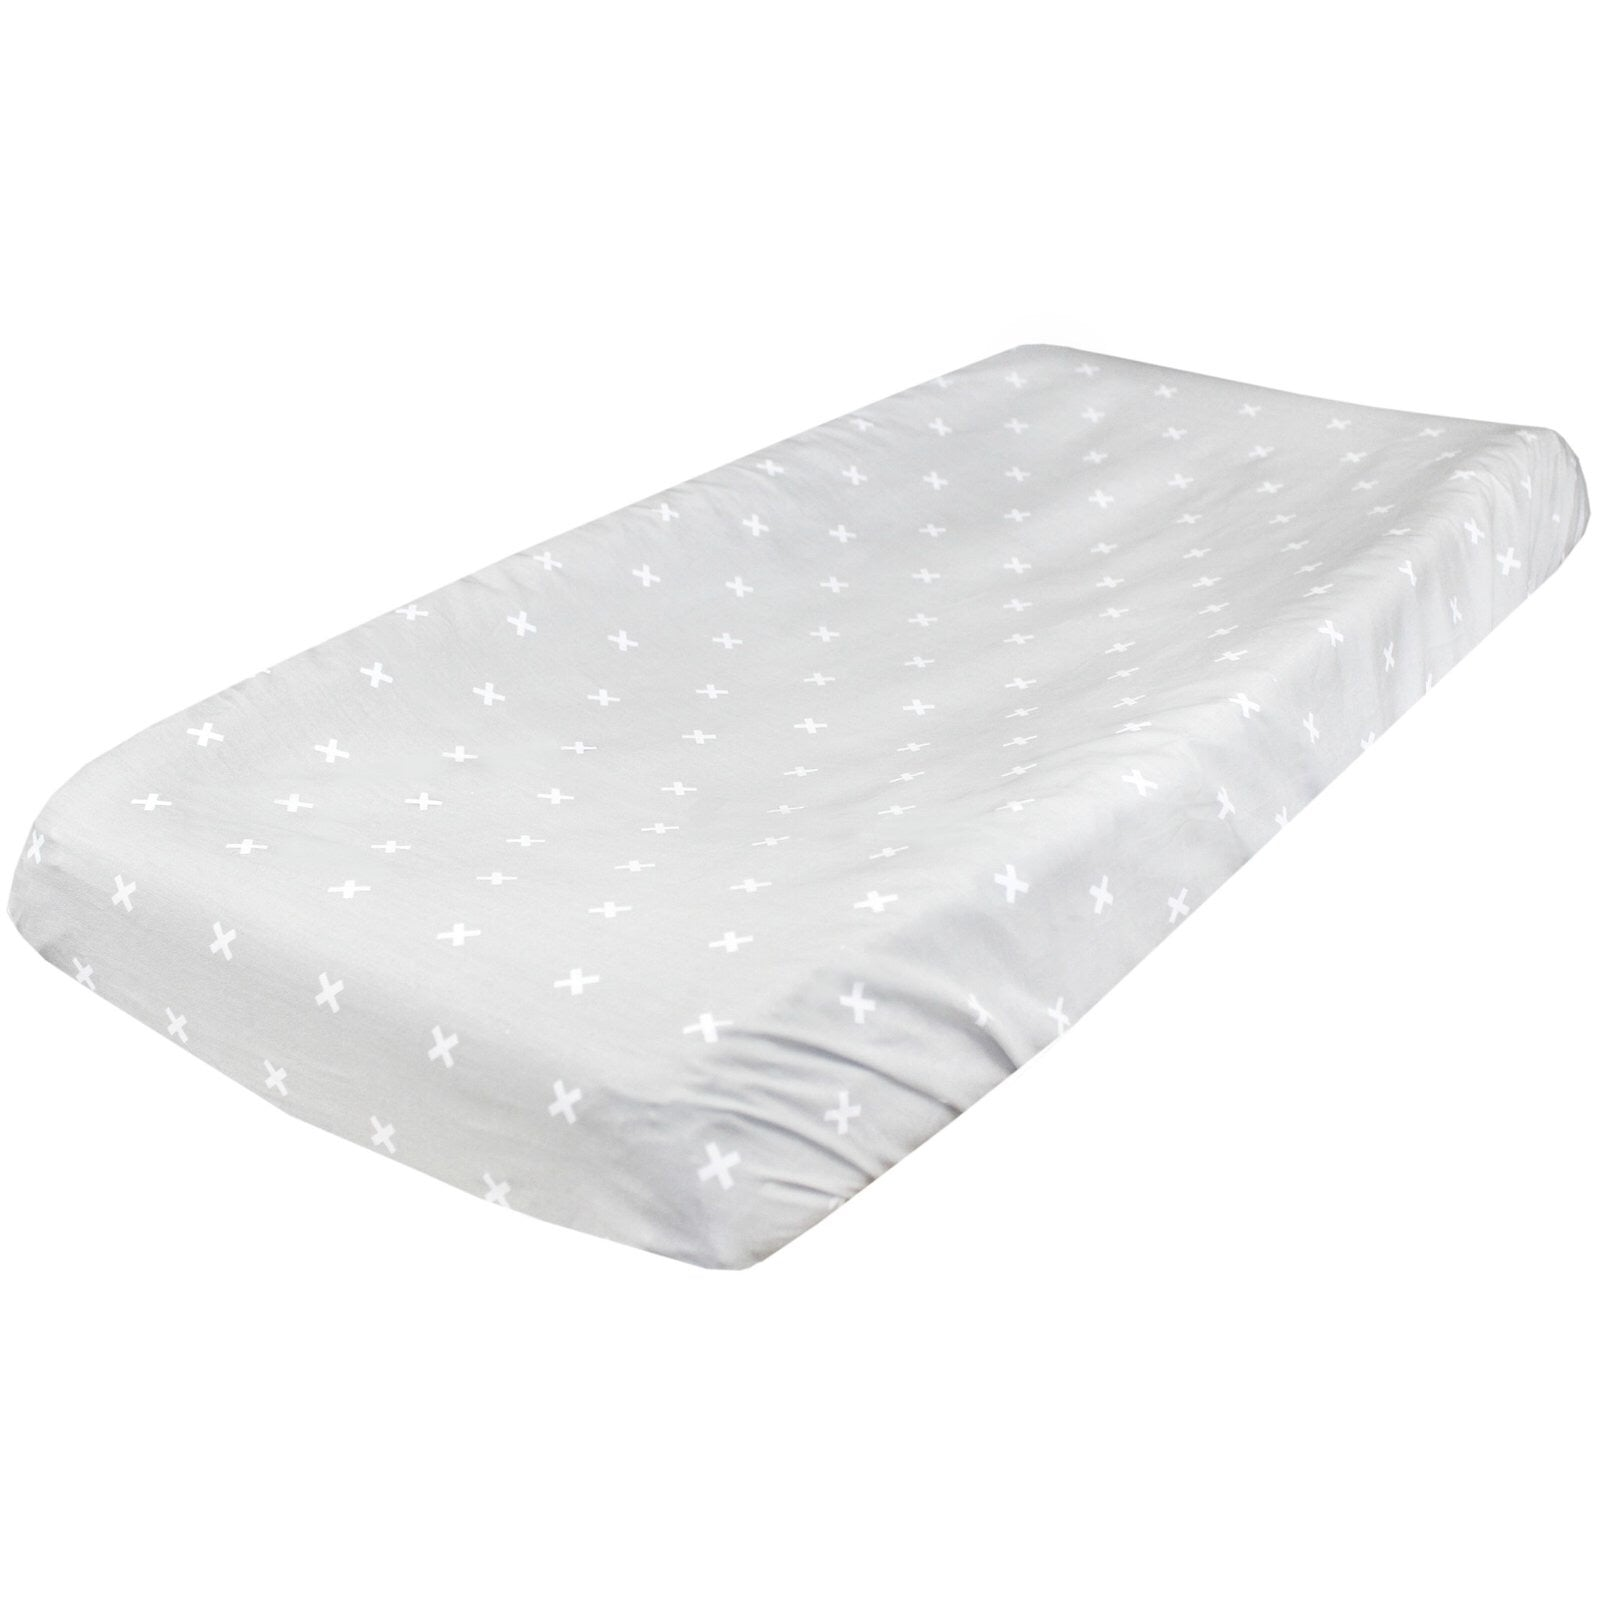 x Diaper Changing Pad Cover